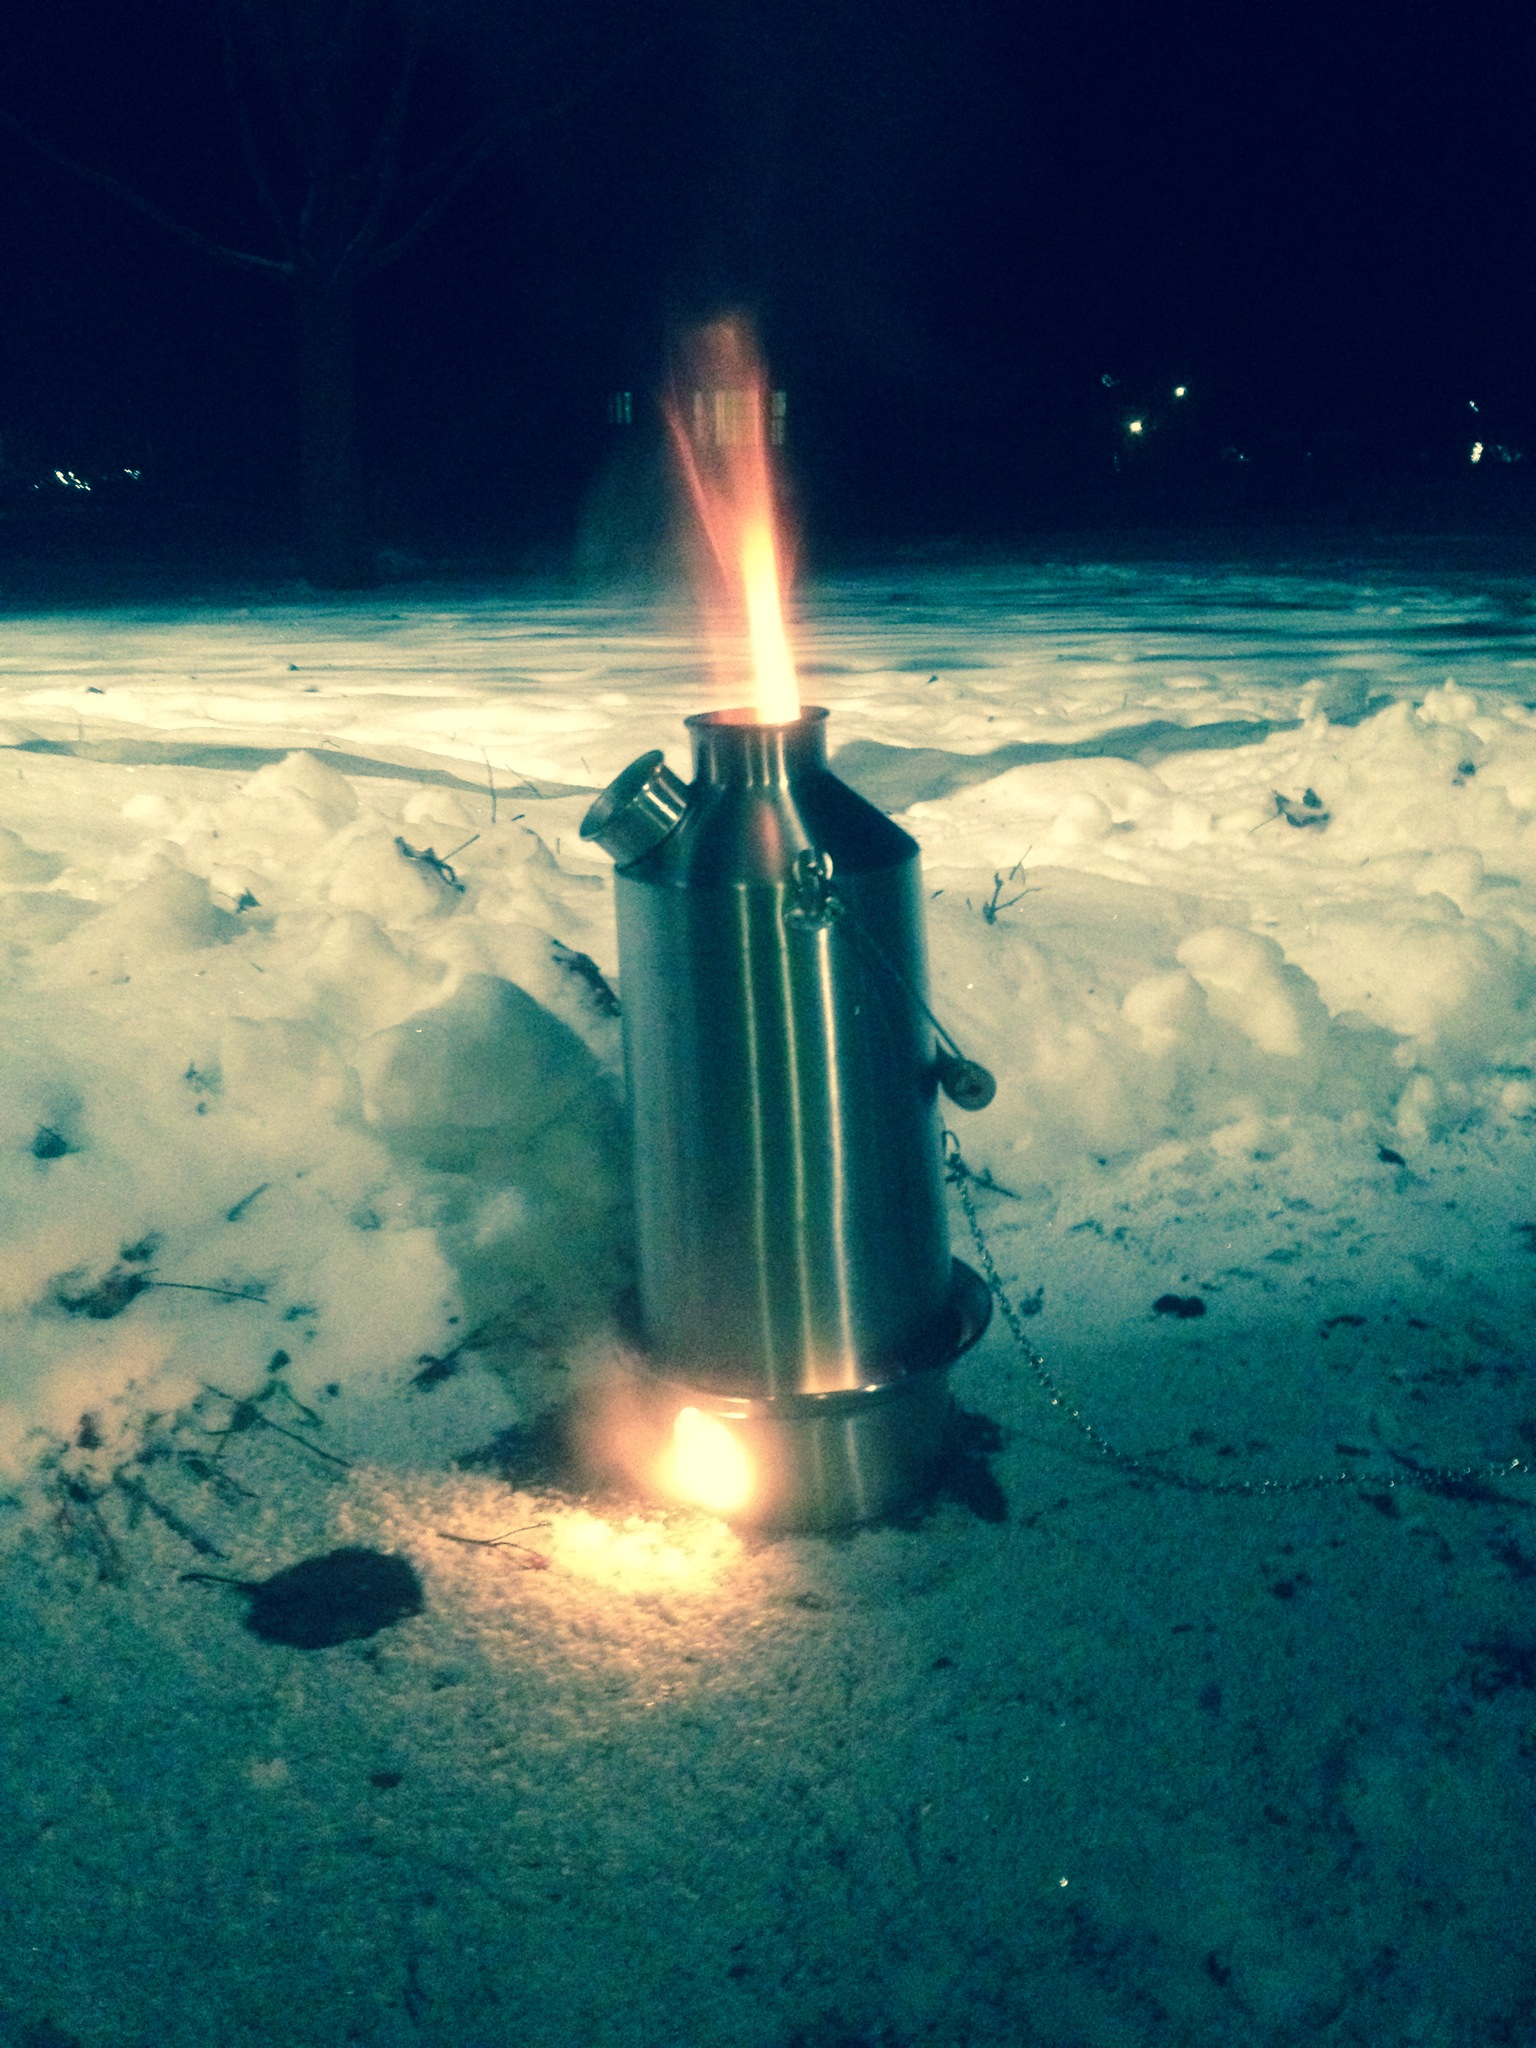 Boiling water at -23 Degrees Celsius, Illinois Jan.2014